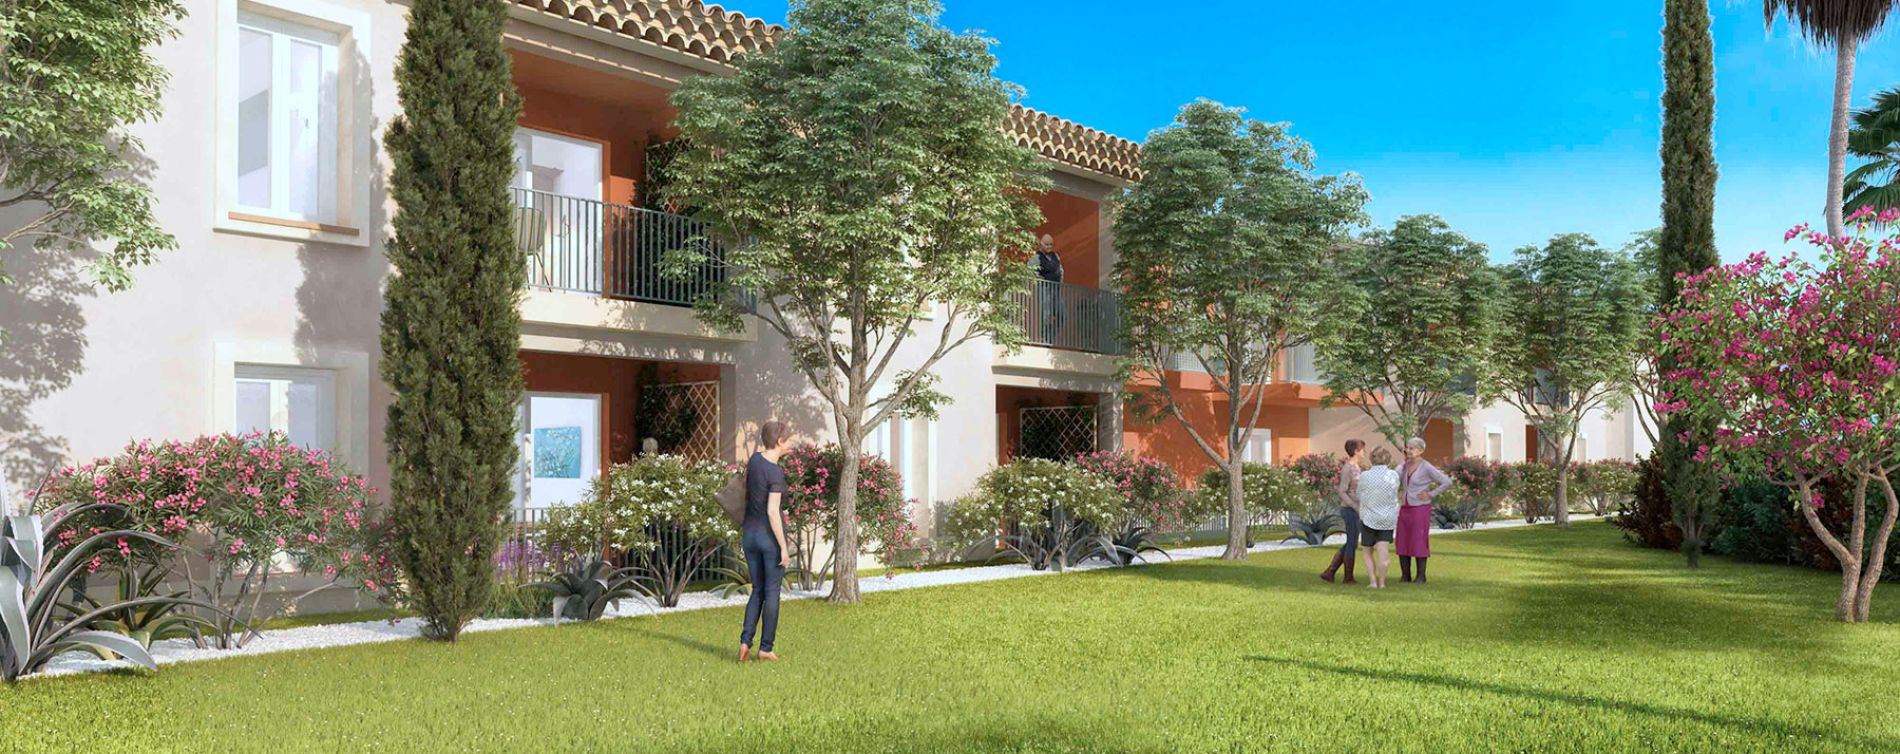 Résidence Les Villages d'Or Grimaud - Appartements à Grimaud